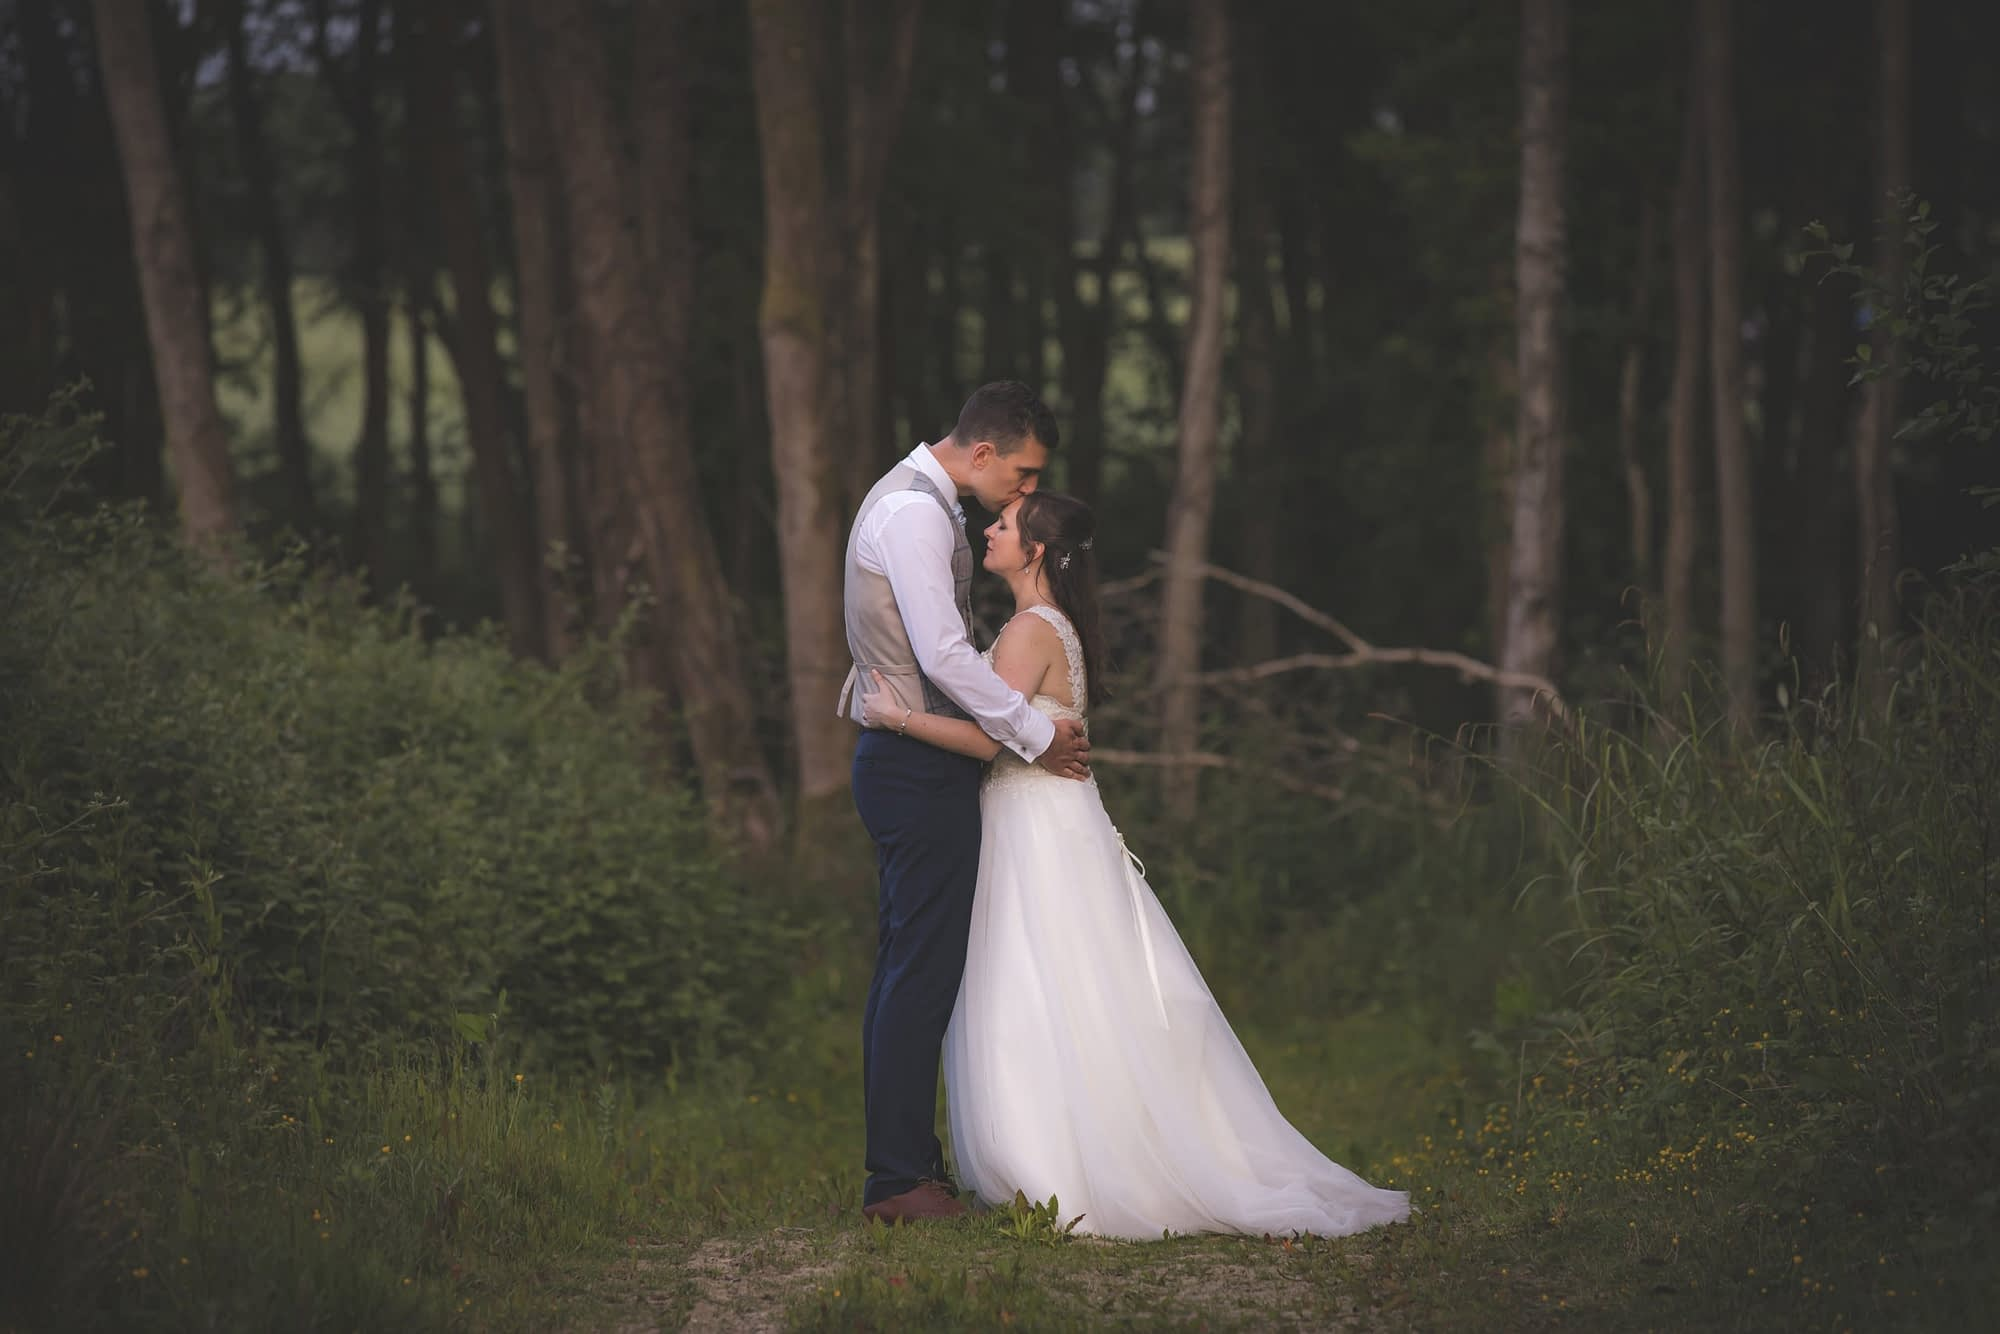 couple standing together outside in a forest clearing